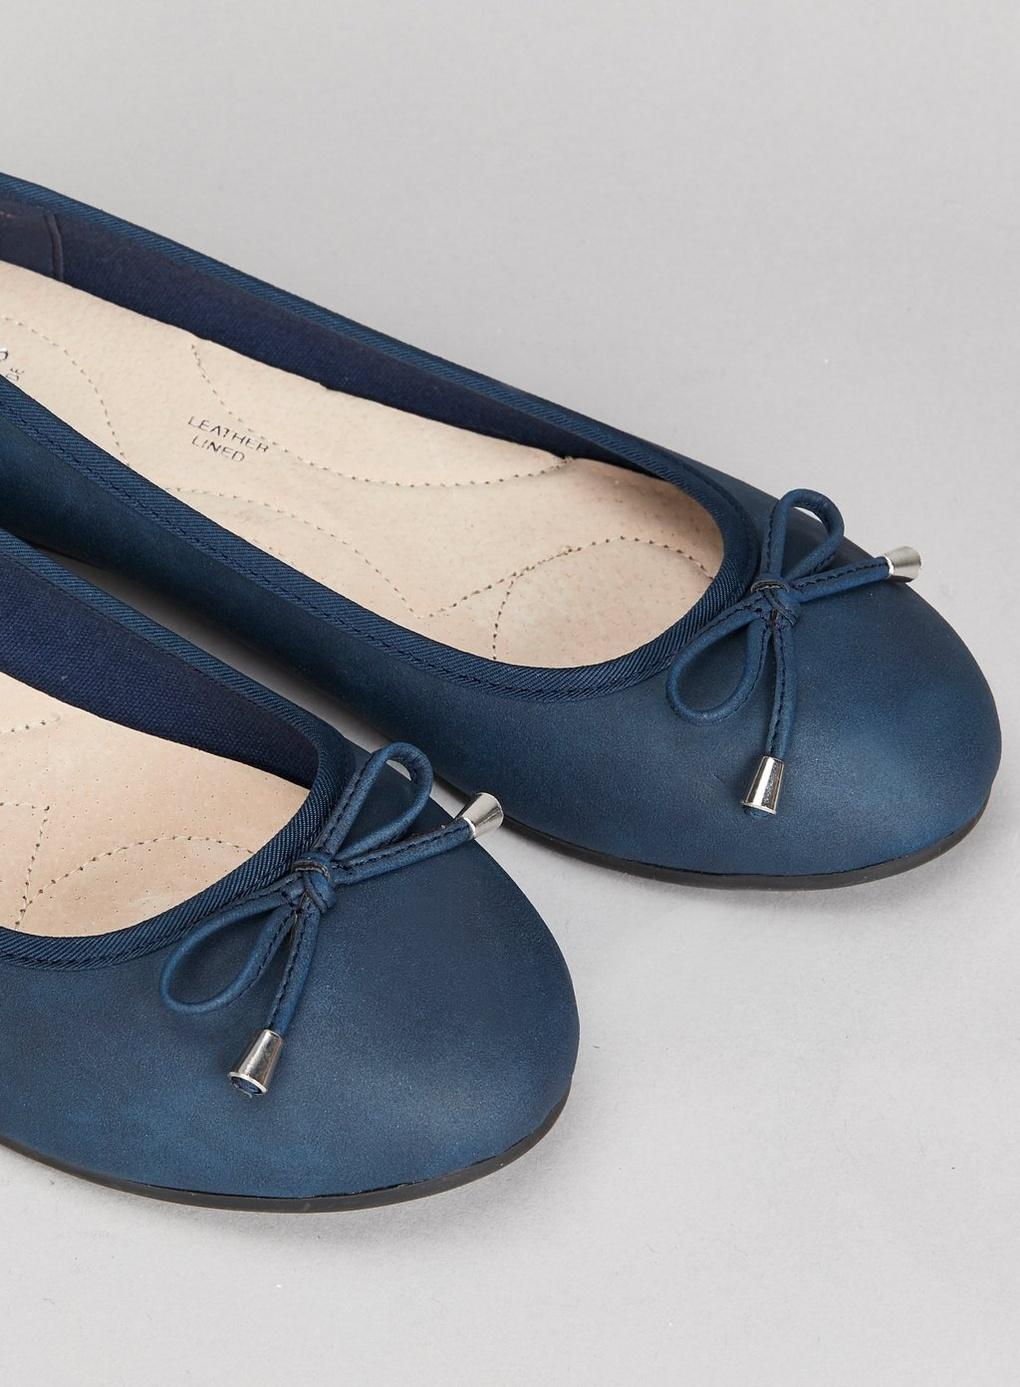 967f69bbd06 Evans - Wide Fit Navy Blue Bow Ballerina Shoes - Lyst. View fullscreen